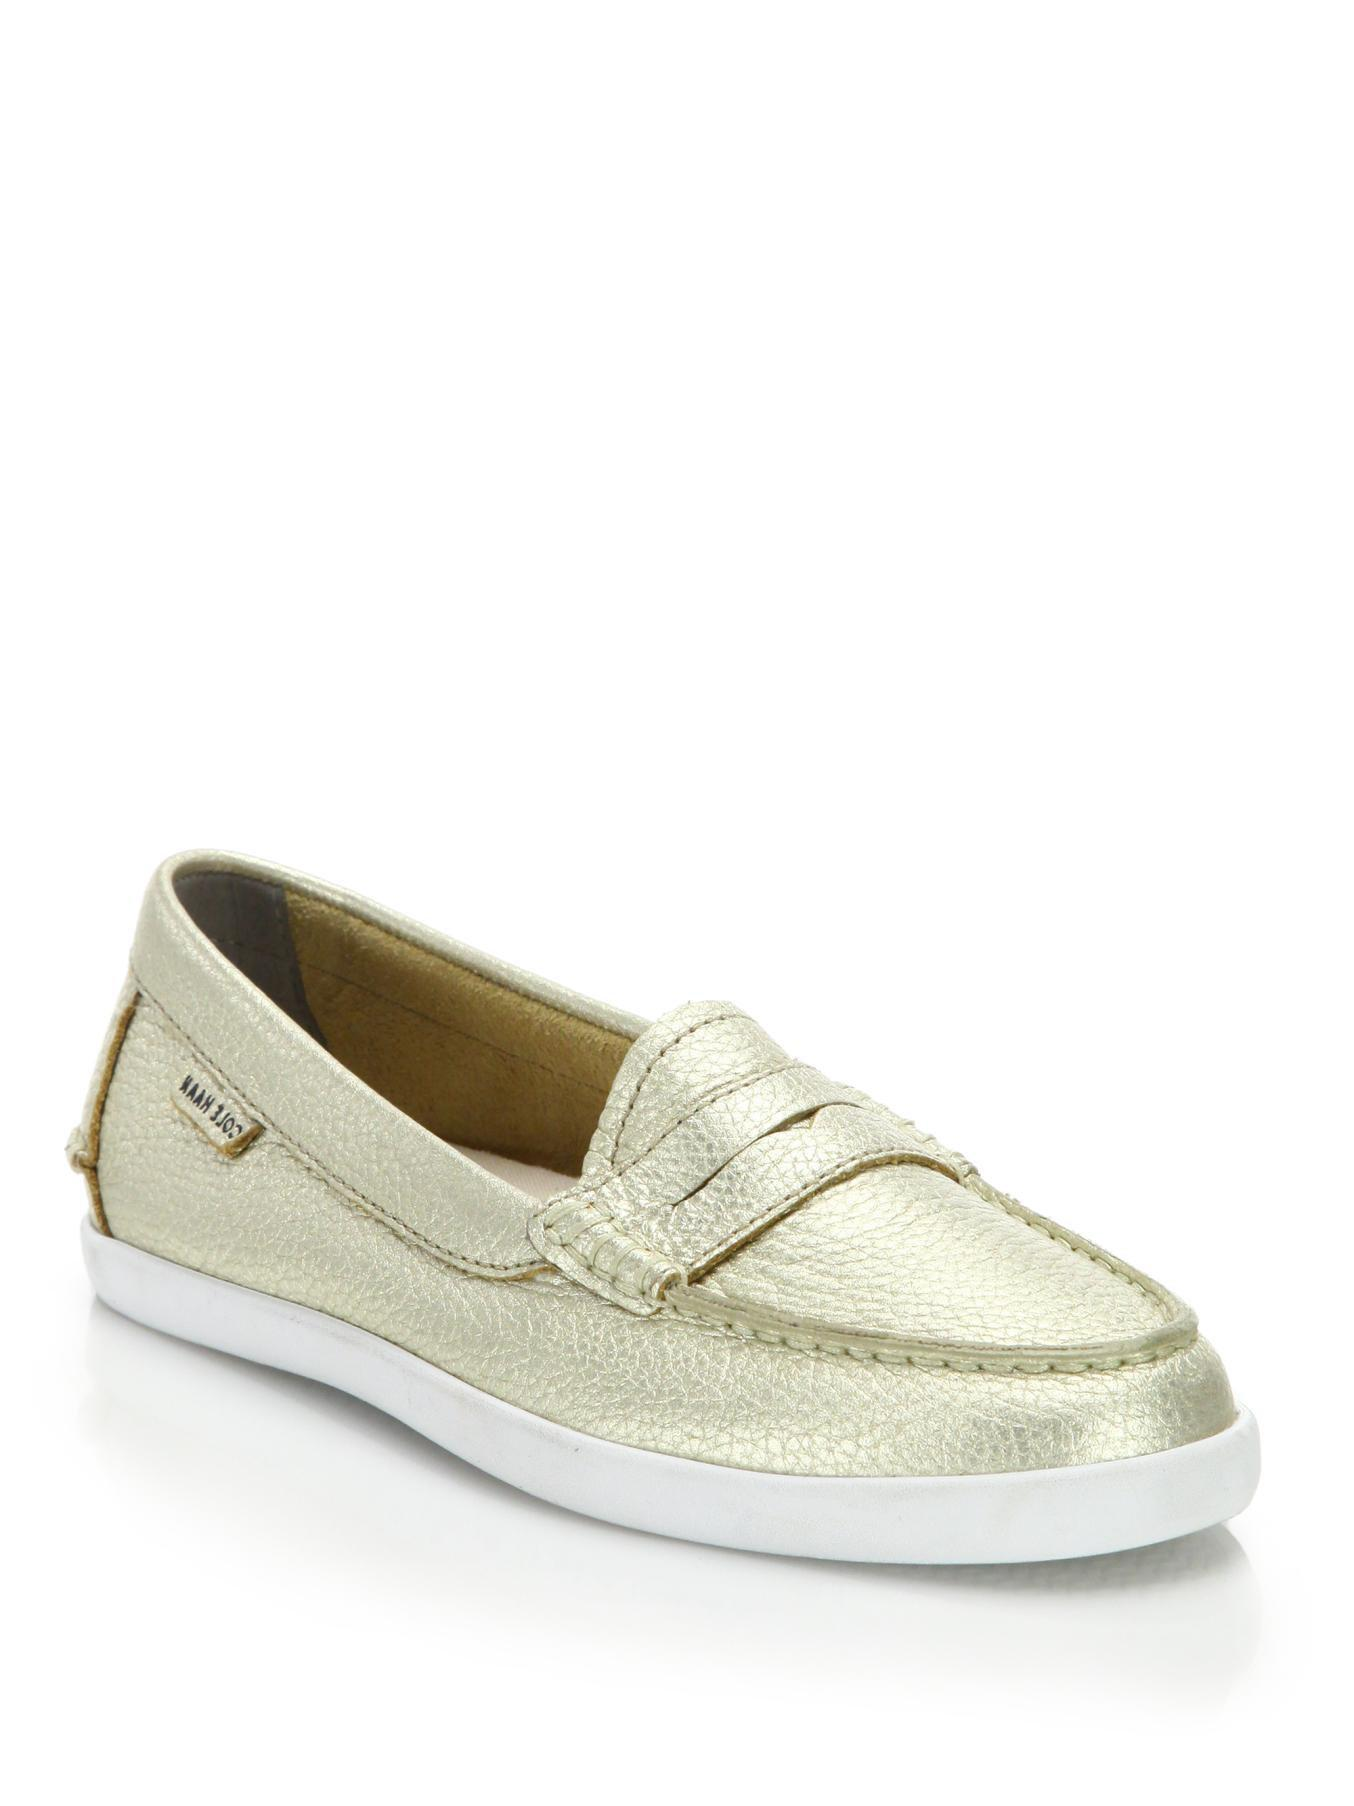 Cole Haan Pinch Weekender Metallic Leather Loafers bSBKzv7